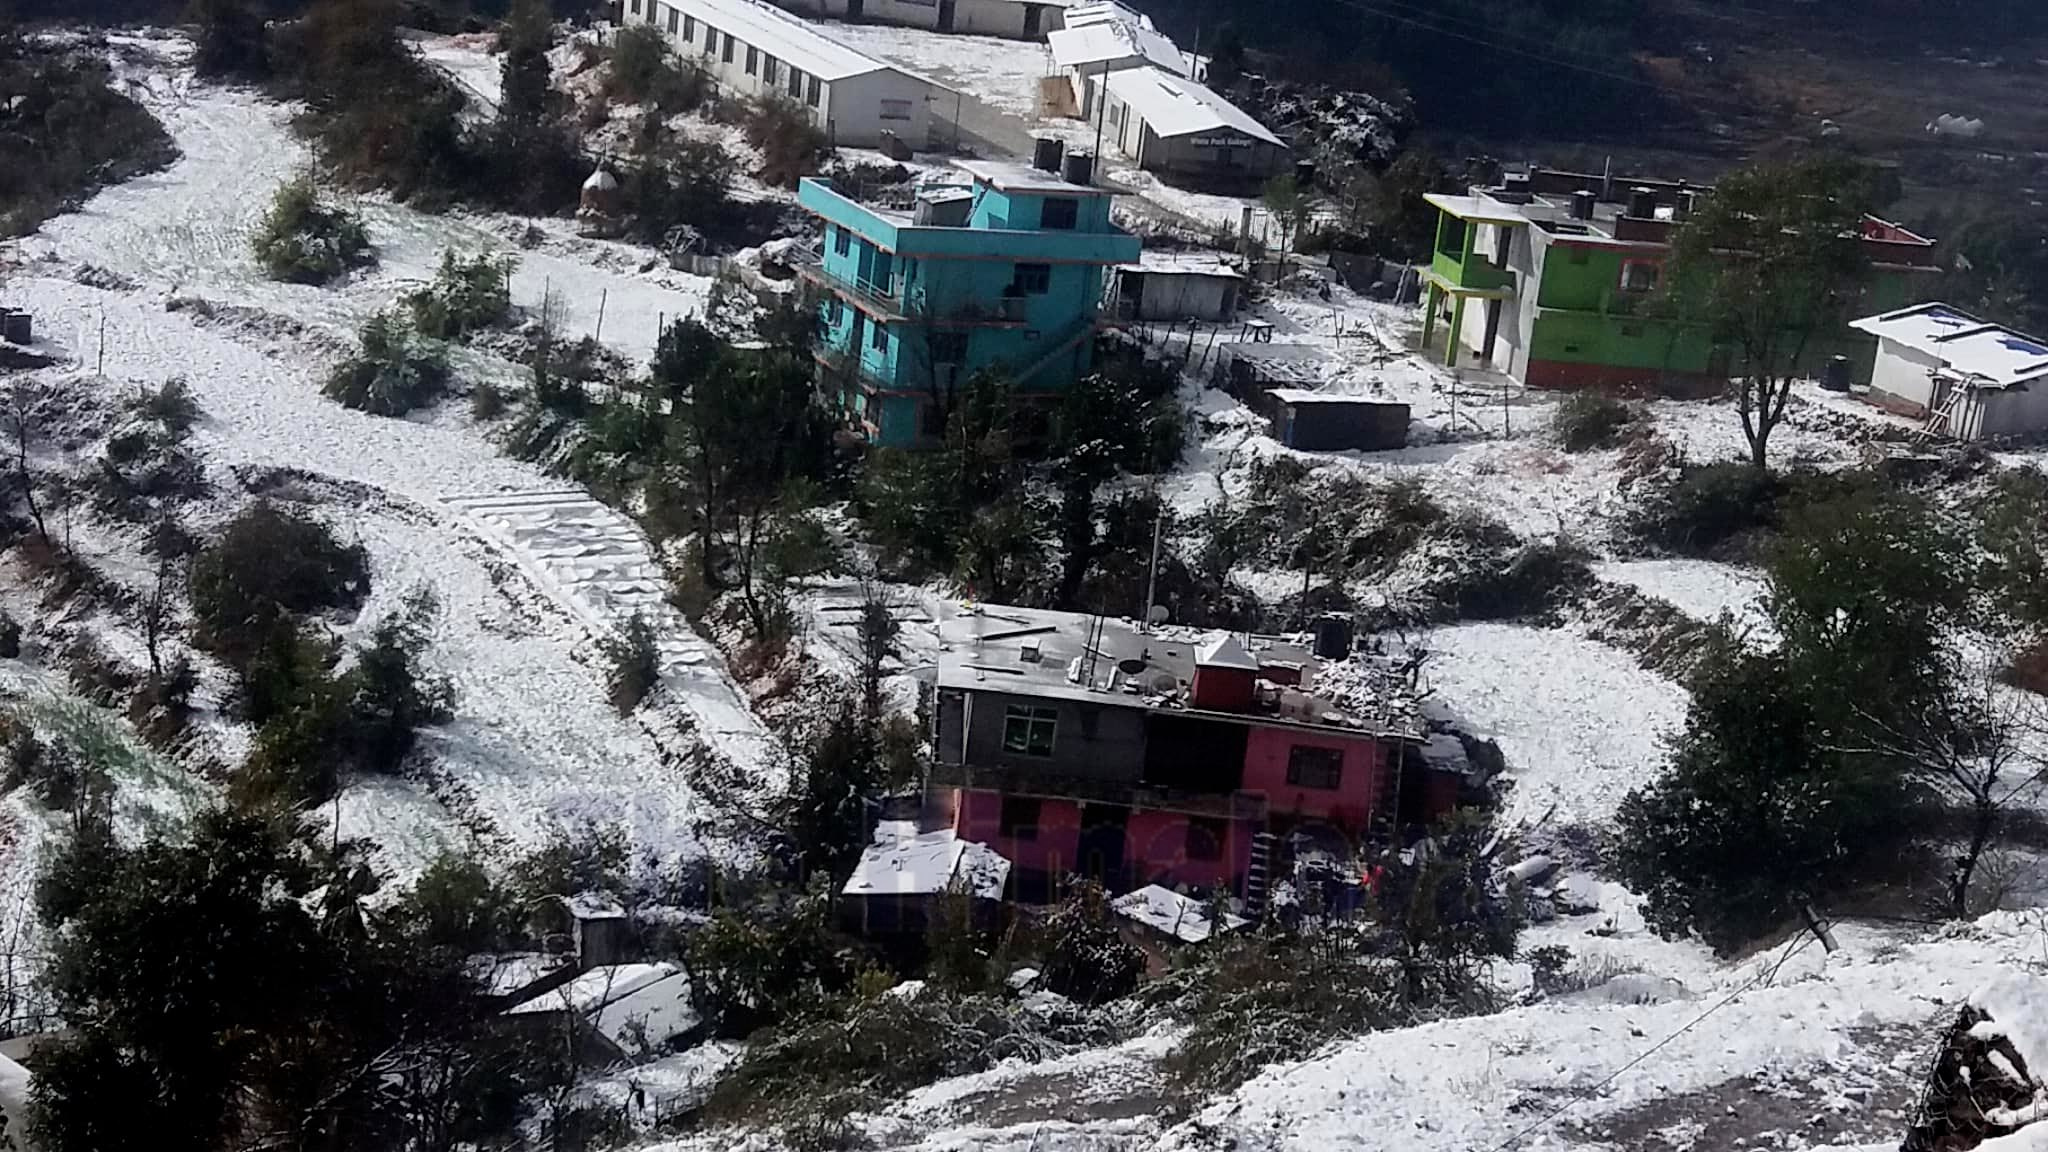 A human settlement area covered in snow, in Baghkhor, the district headquarters of Dadeldhura, on Friday, January 03, 2020. Photo: Baburam Shrestha/THT